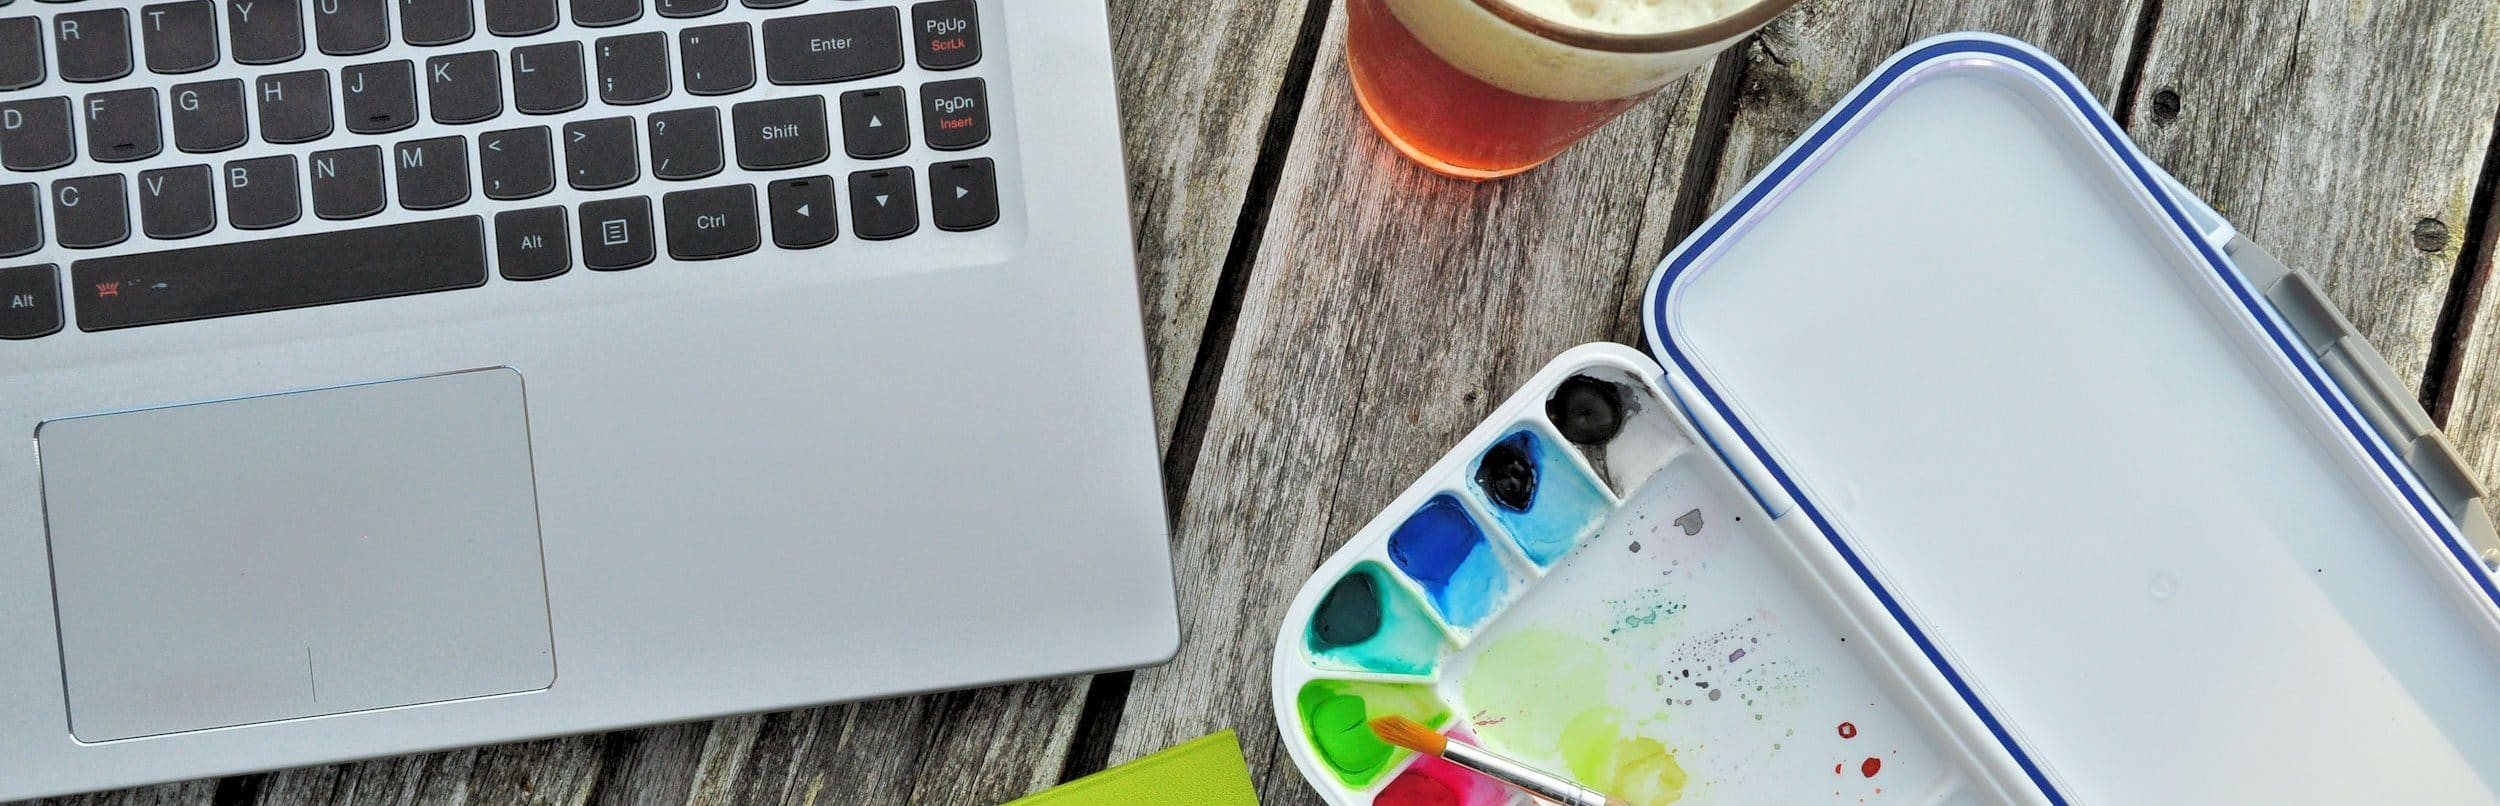 wooden table with glass of beer, green notebook, laptop computer, and watercolor paint set